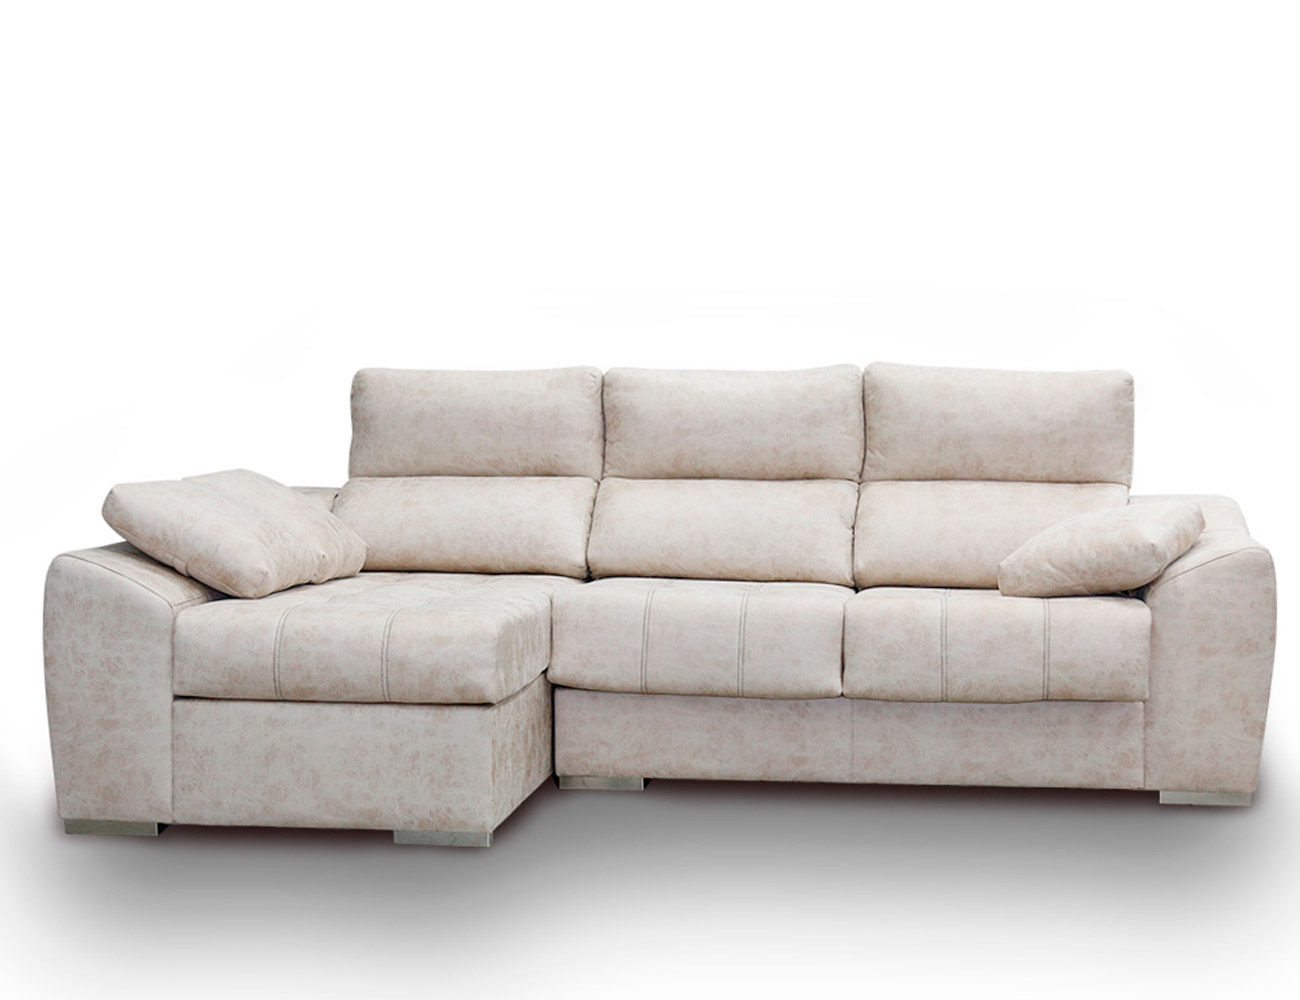 Sofa chaiselongue anti manchas beig blanco24